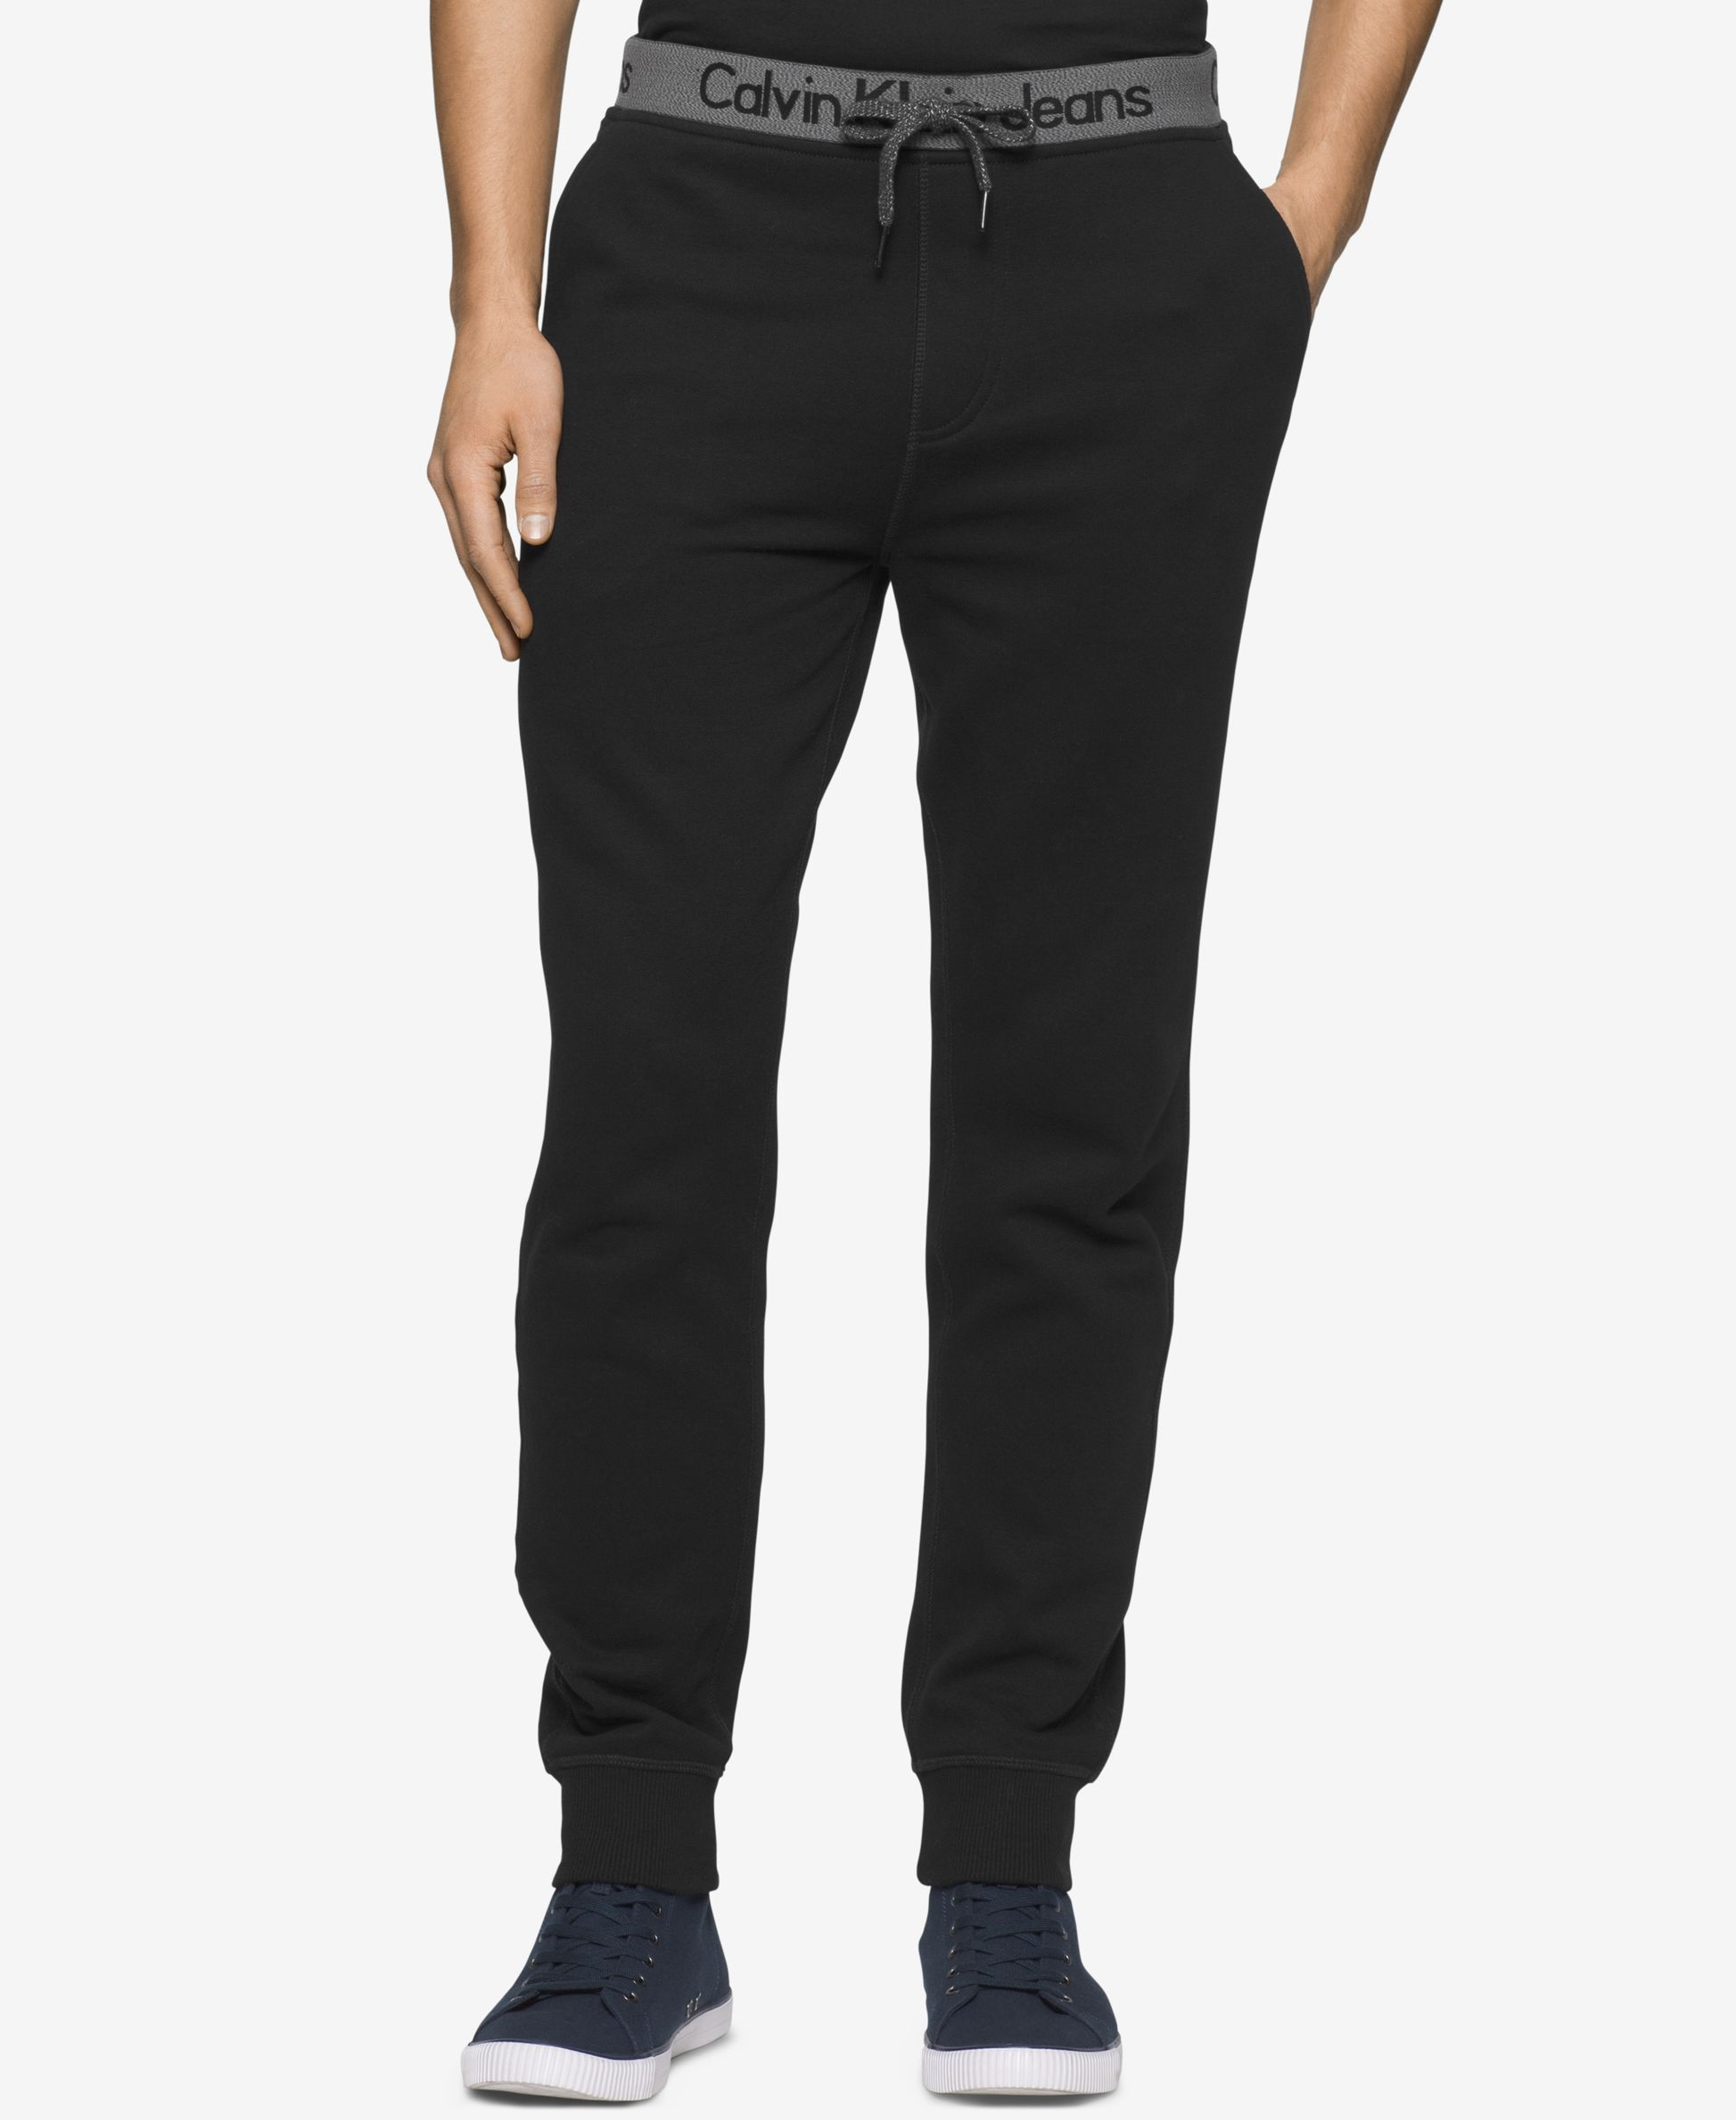 4e50be789b48 Calvin Klein Men's Logo Waistband Sweatpants | Calvin Klein in 2019 ...